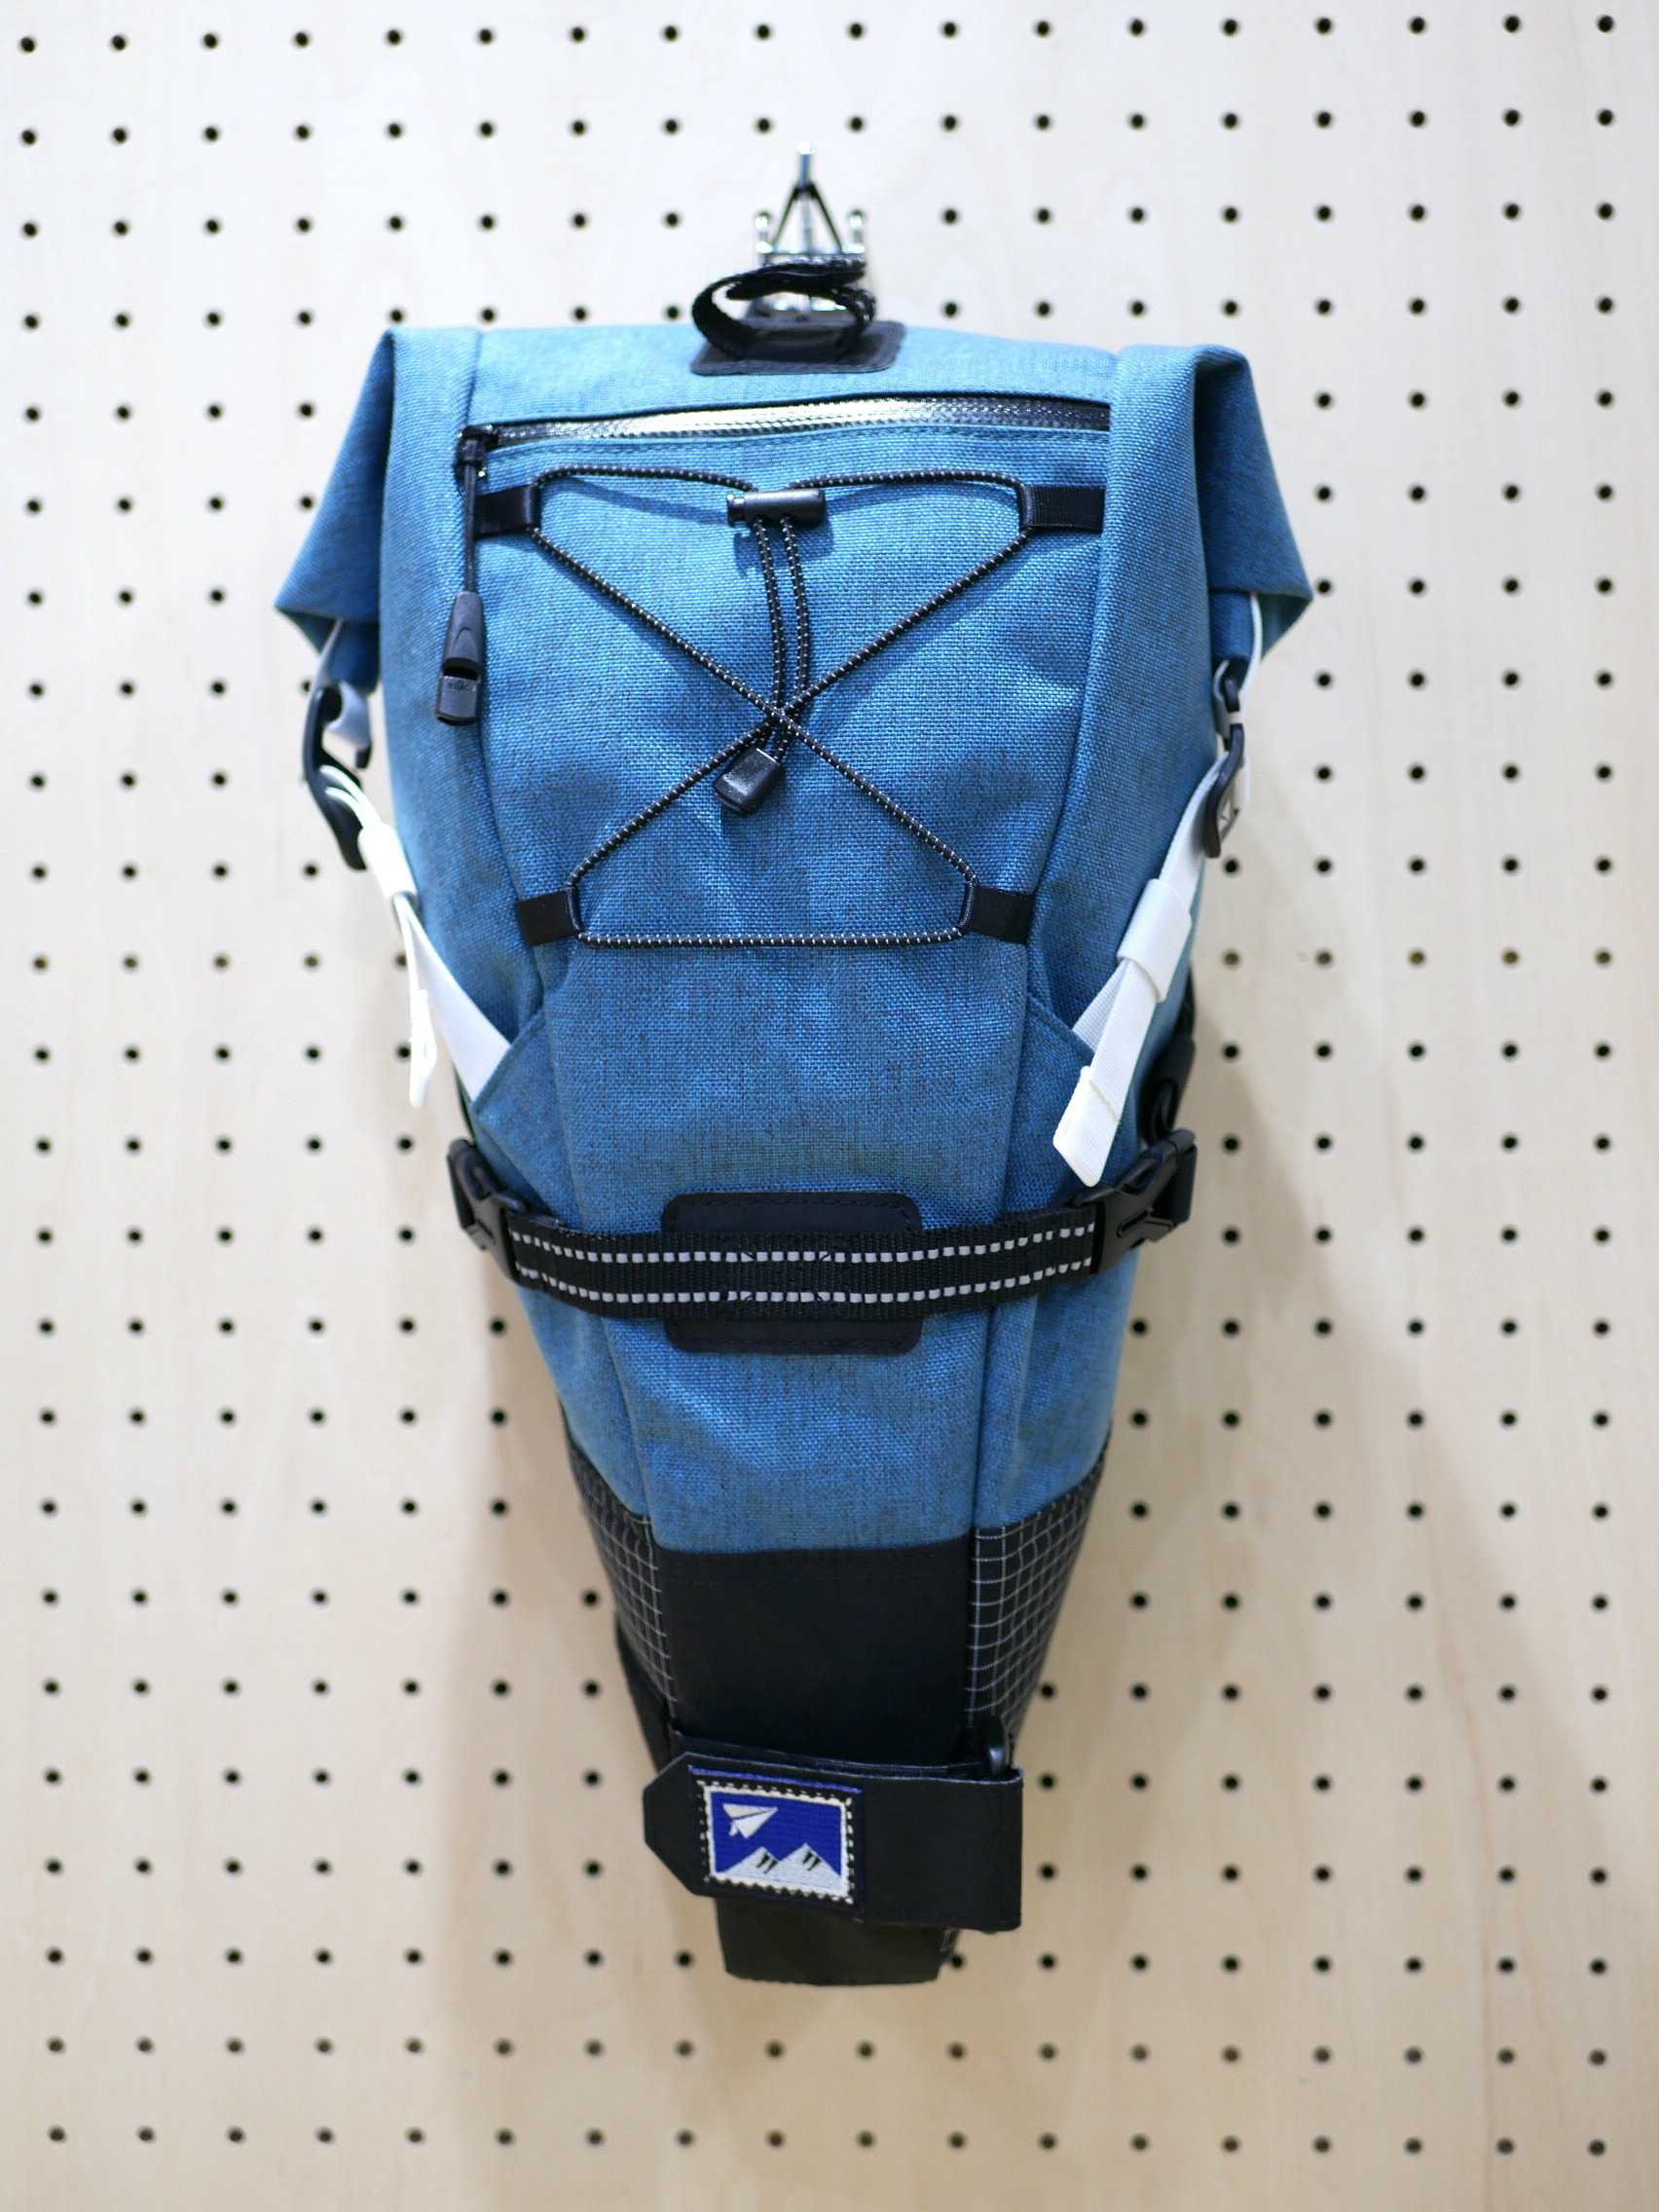 RAWLOW MOUNTAIN WORKS / BIKE'N HIKE BAG(PAPERSKY  ver)